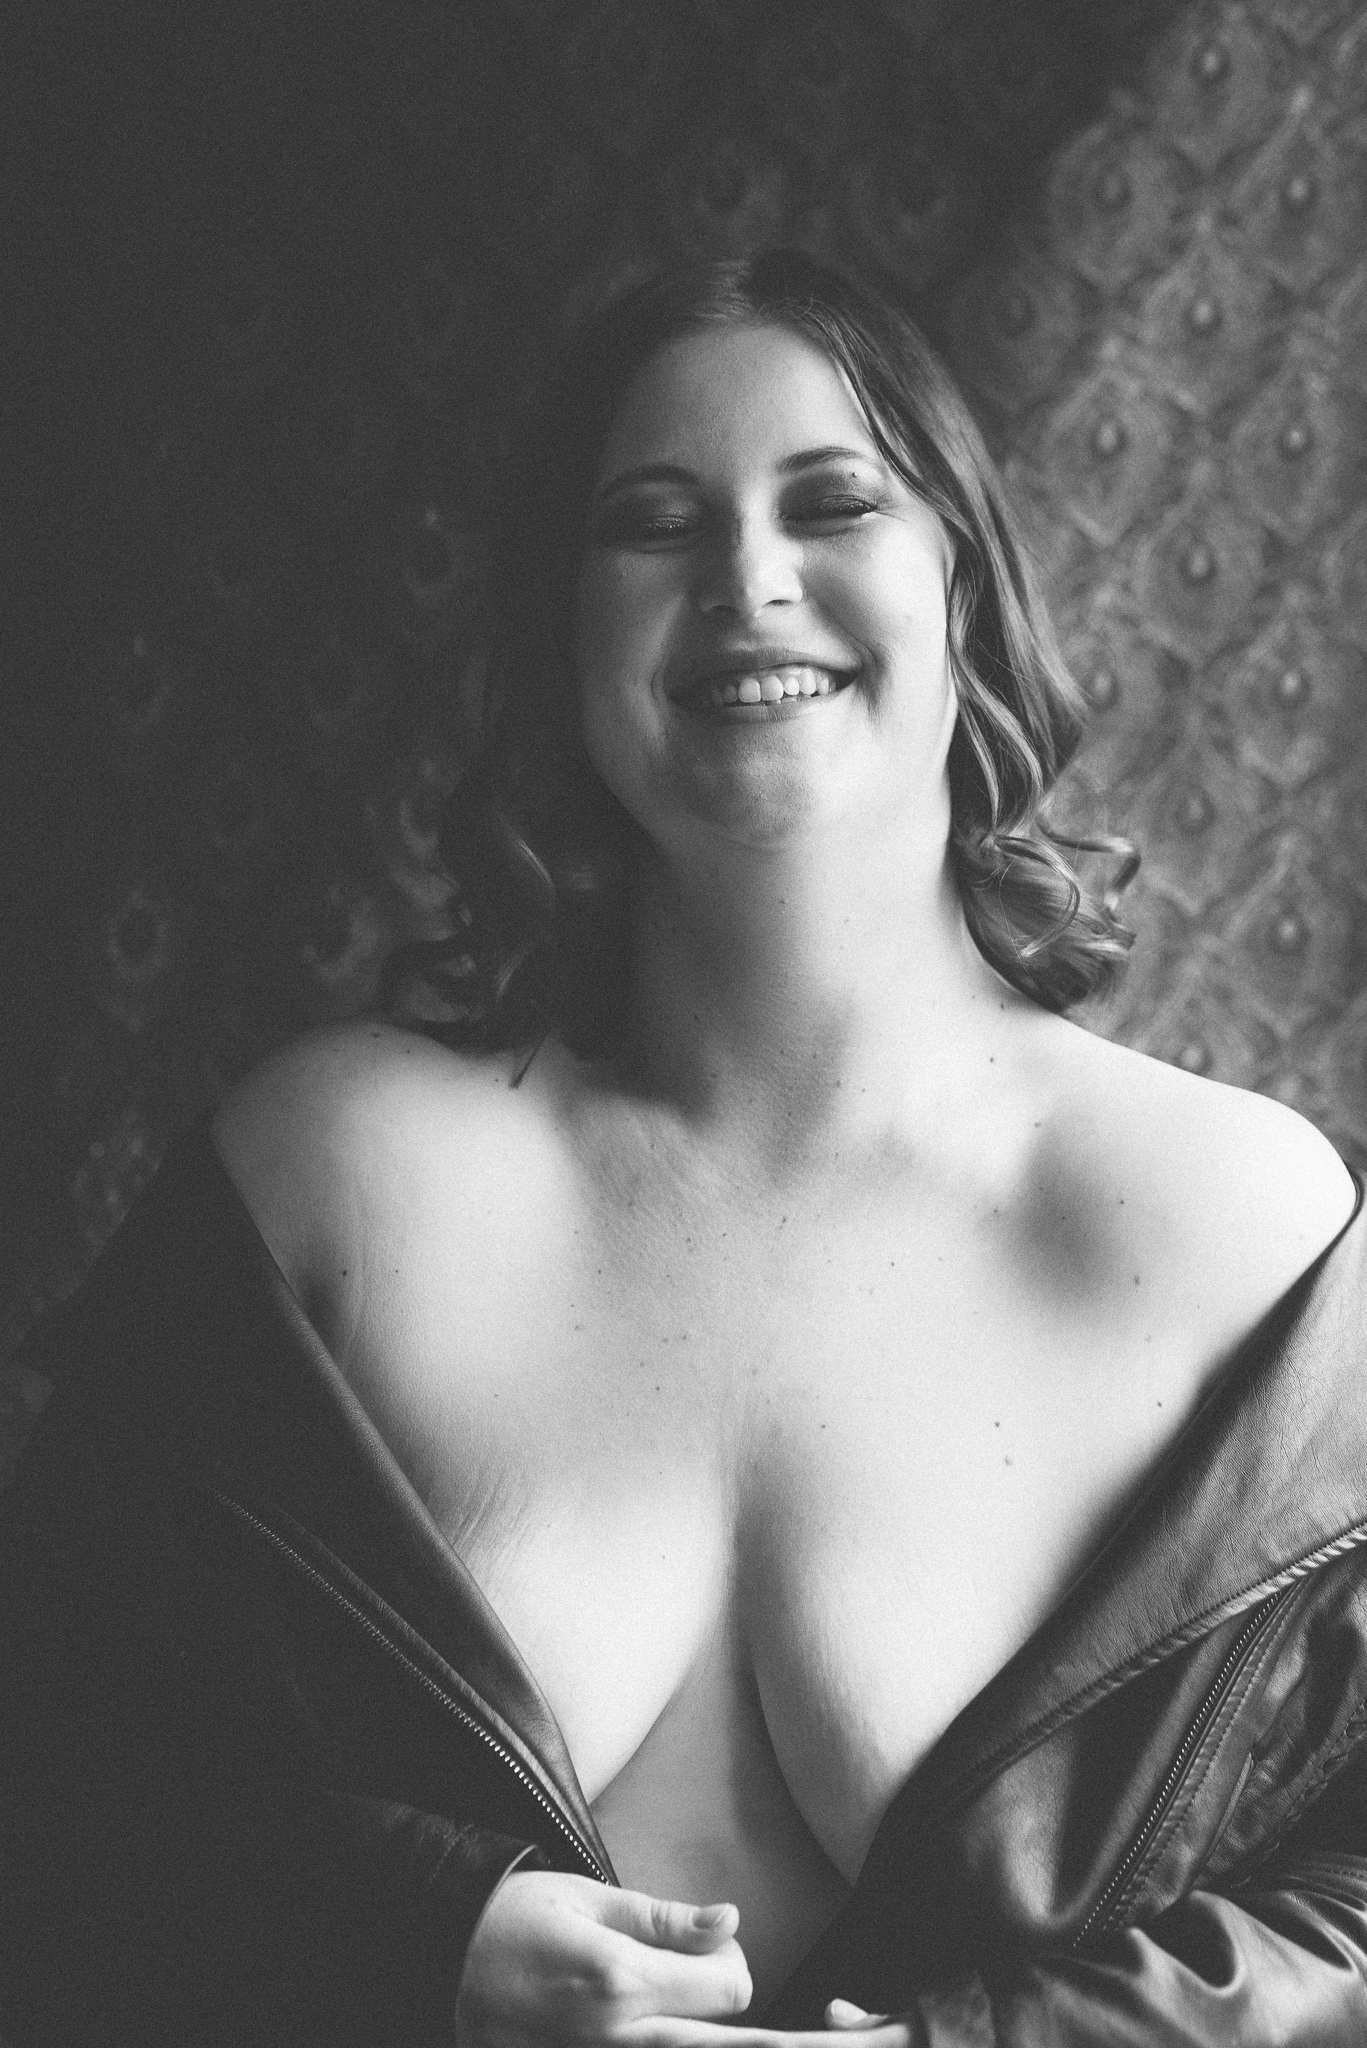 Black and white portrait of woman laughing